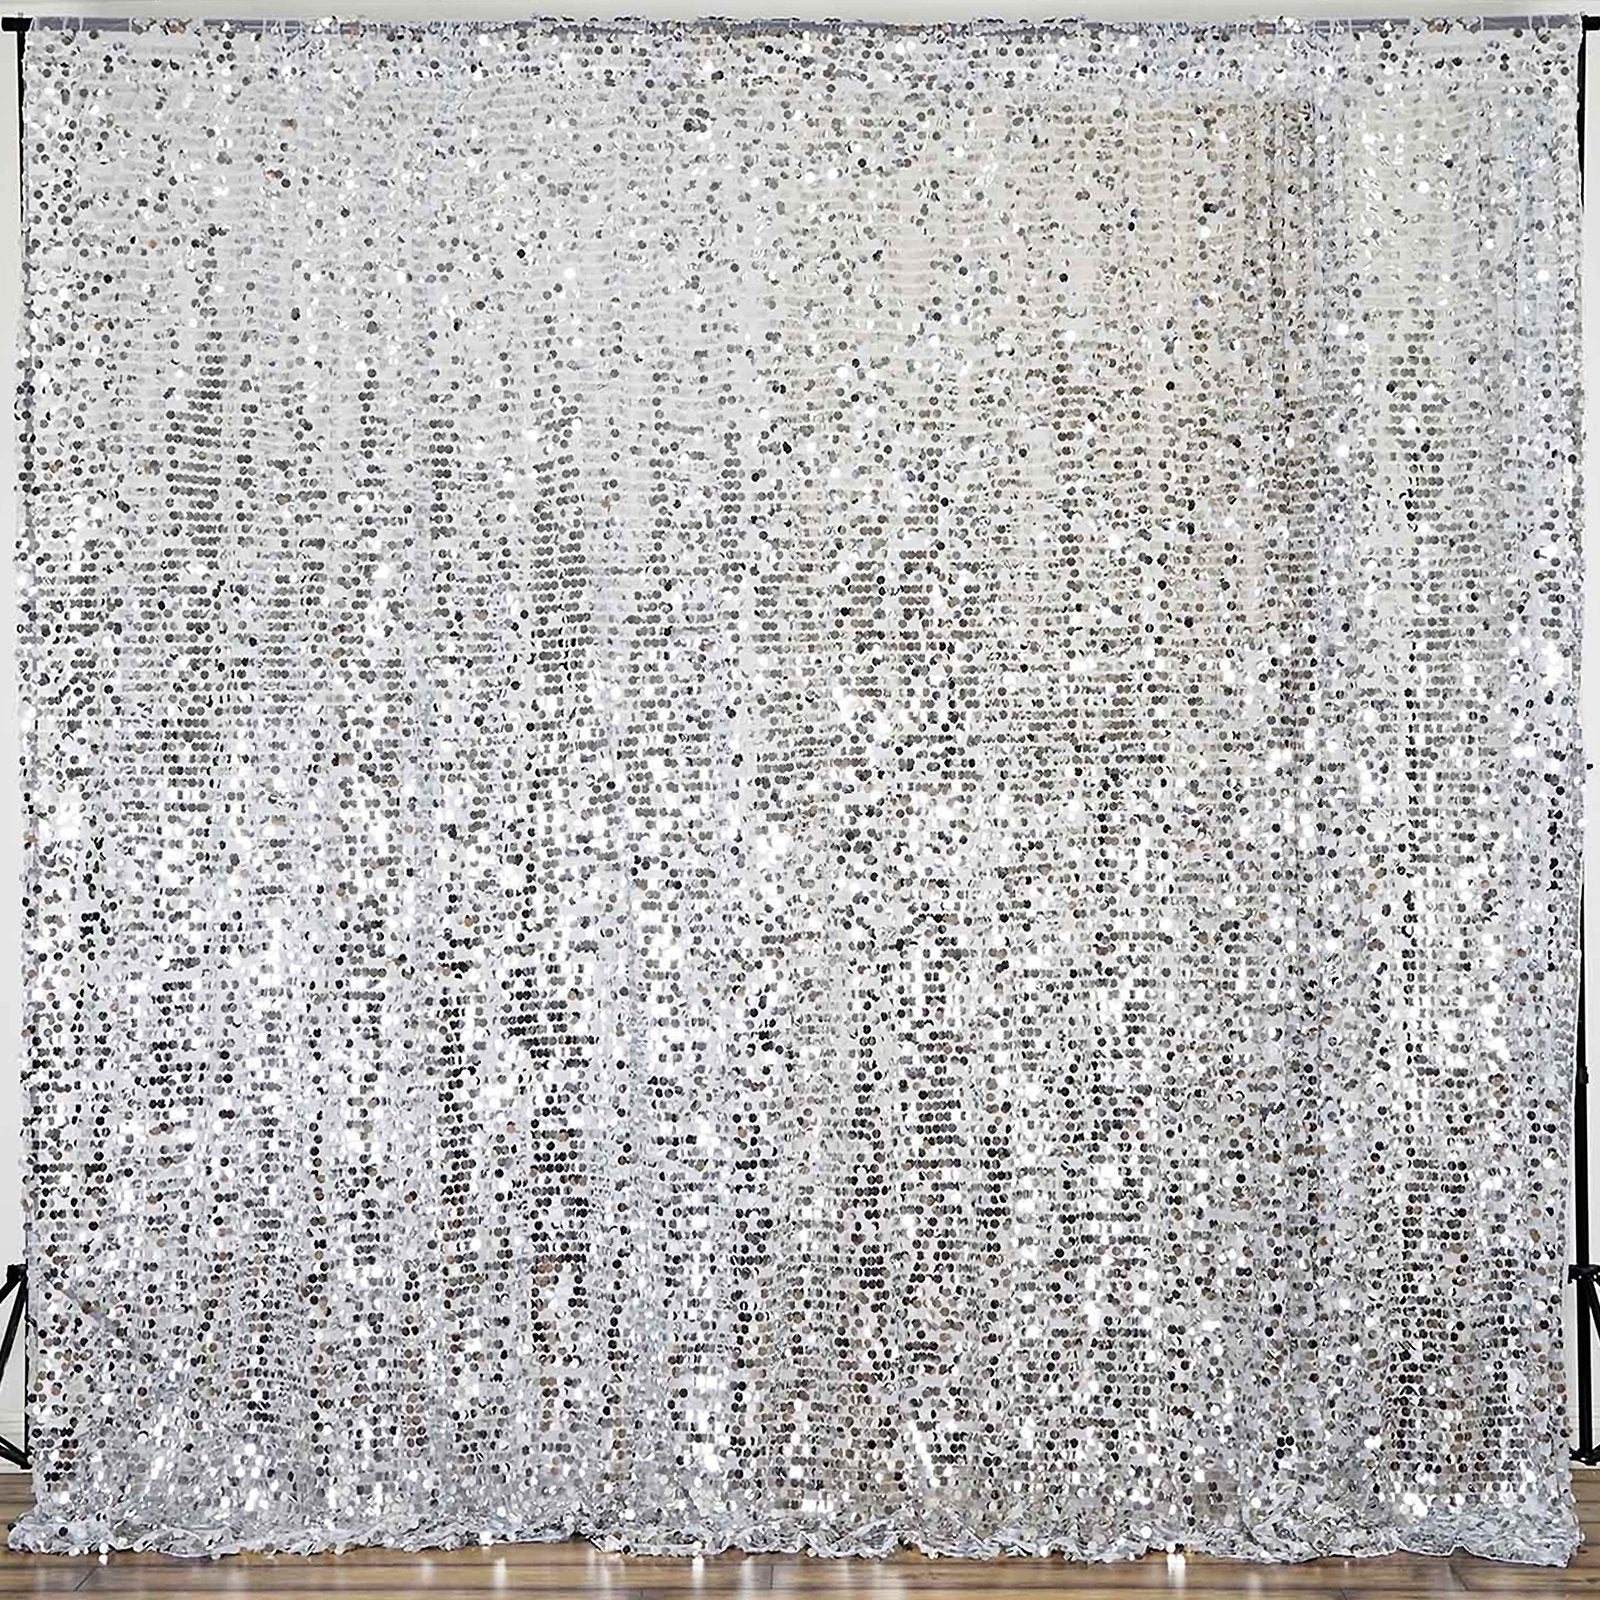 20ft Silver Big Payette Sequin Curtain Panel Backdrop